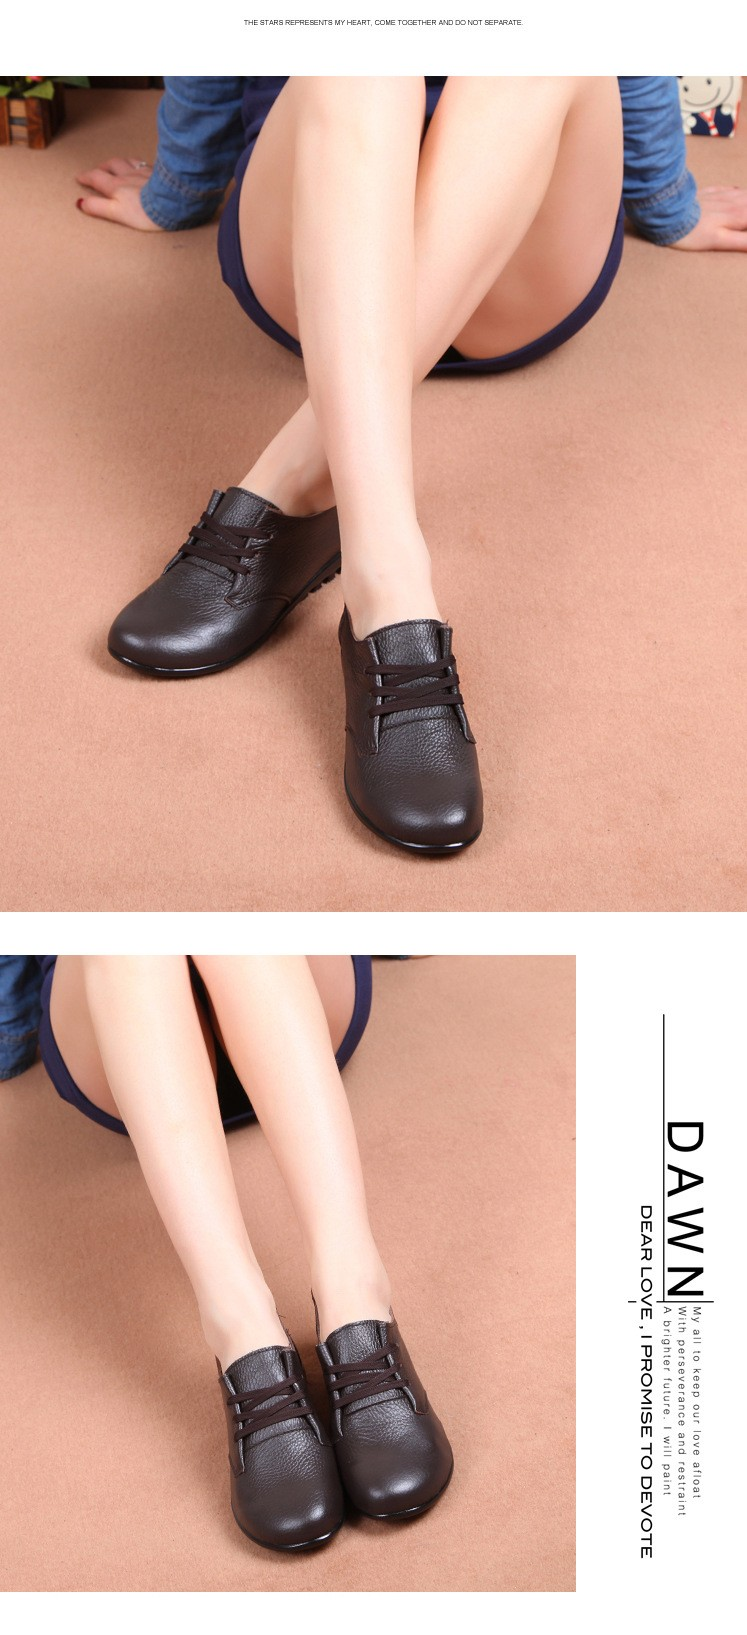 women shoes new genuine leather mother shoes casual lace up flats shoes woman moccasins ballets flats zapatas mujer 2016 DT188 (3)